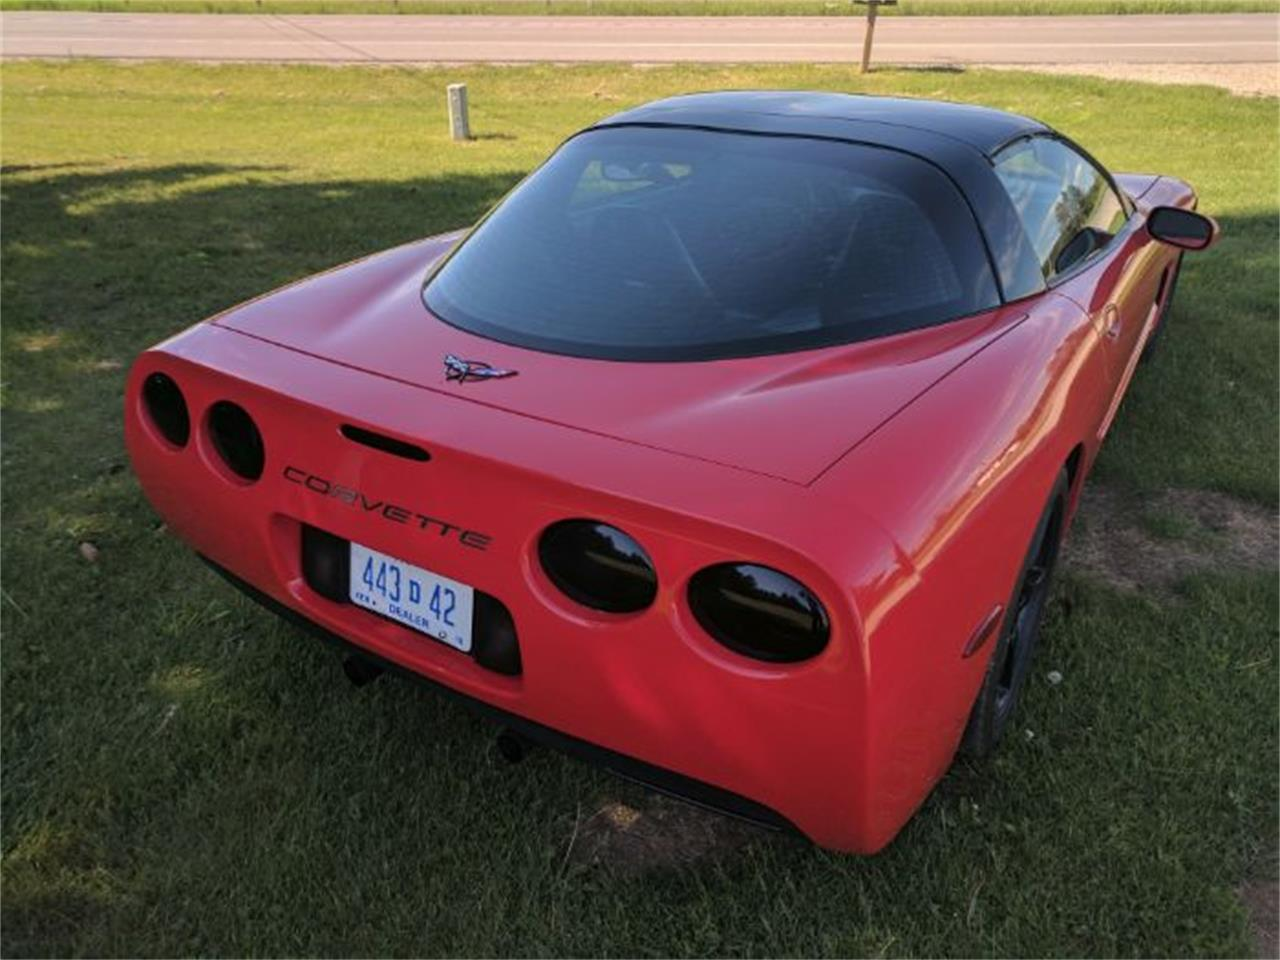 Large Picture of '00 Chevrolet Corvette - $13,900.00 Offered by Classic Car Deals - L7I1